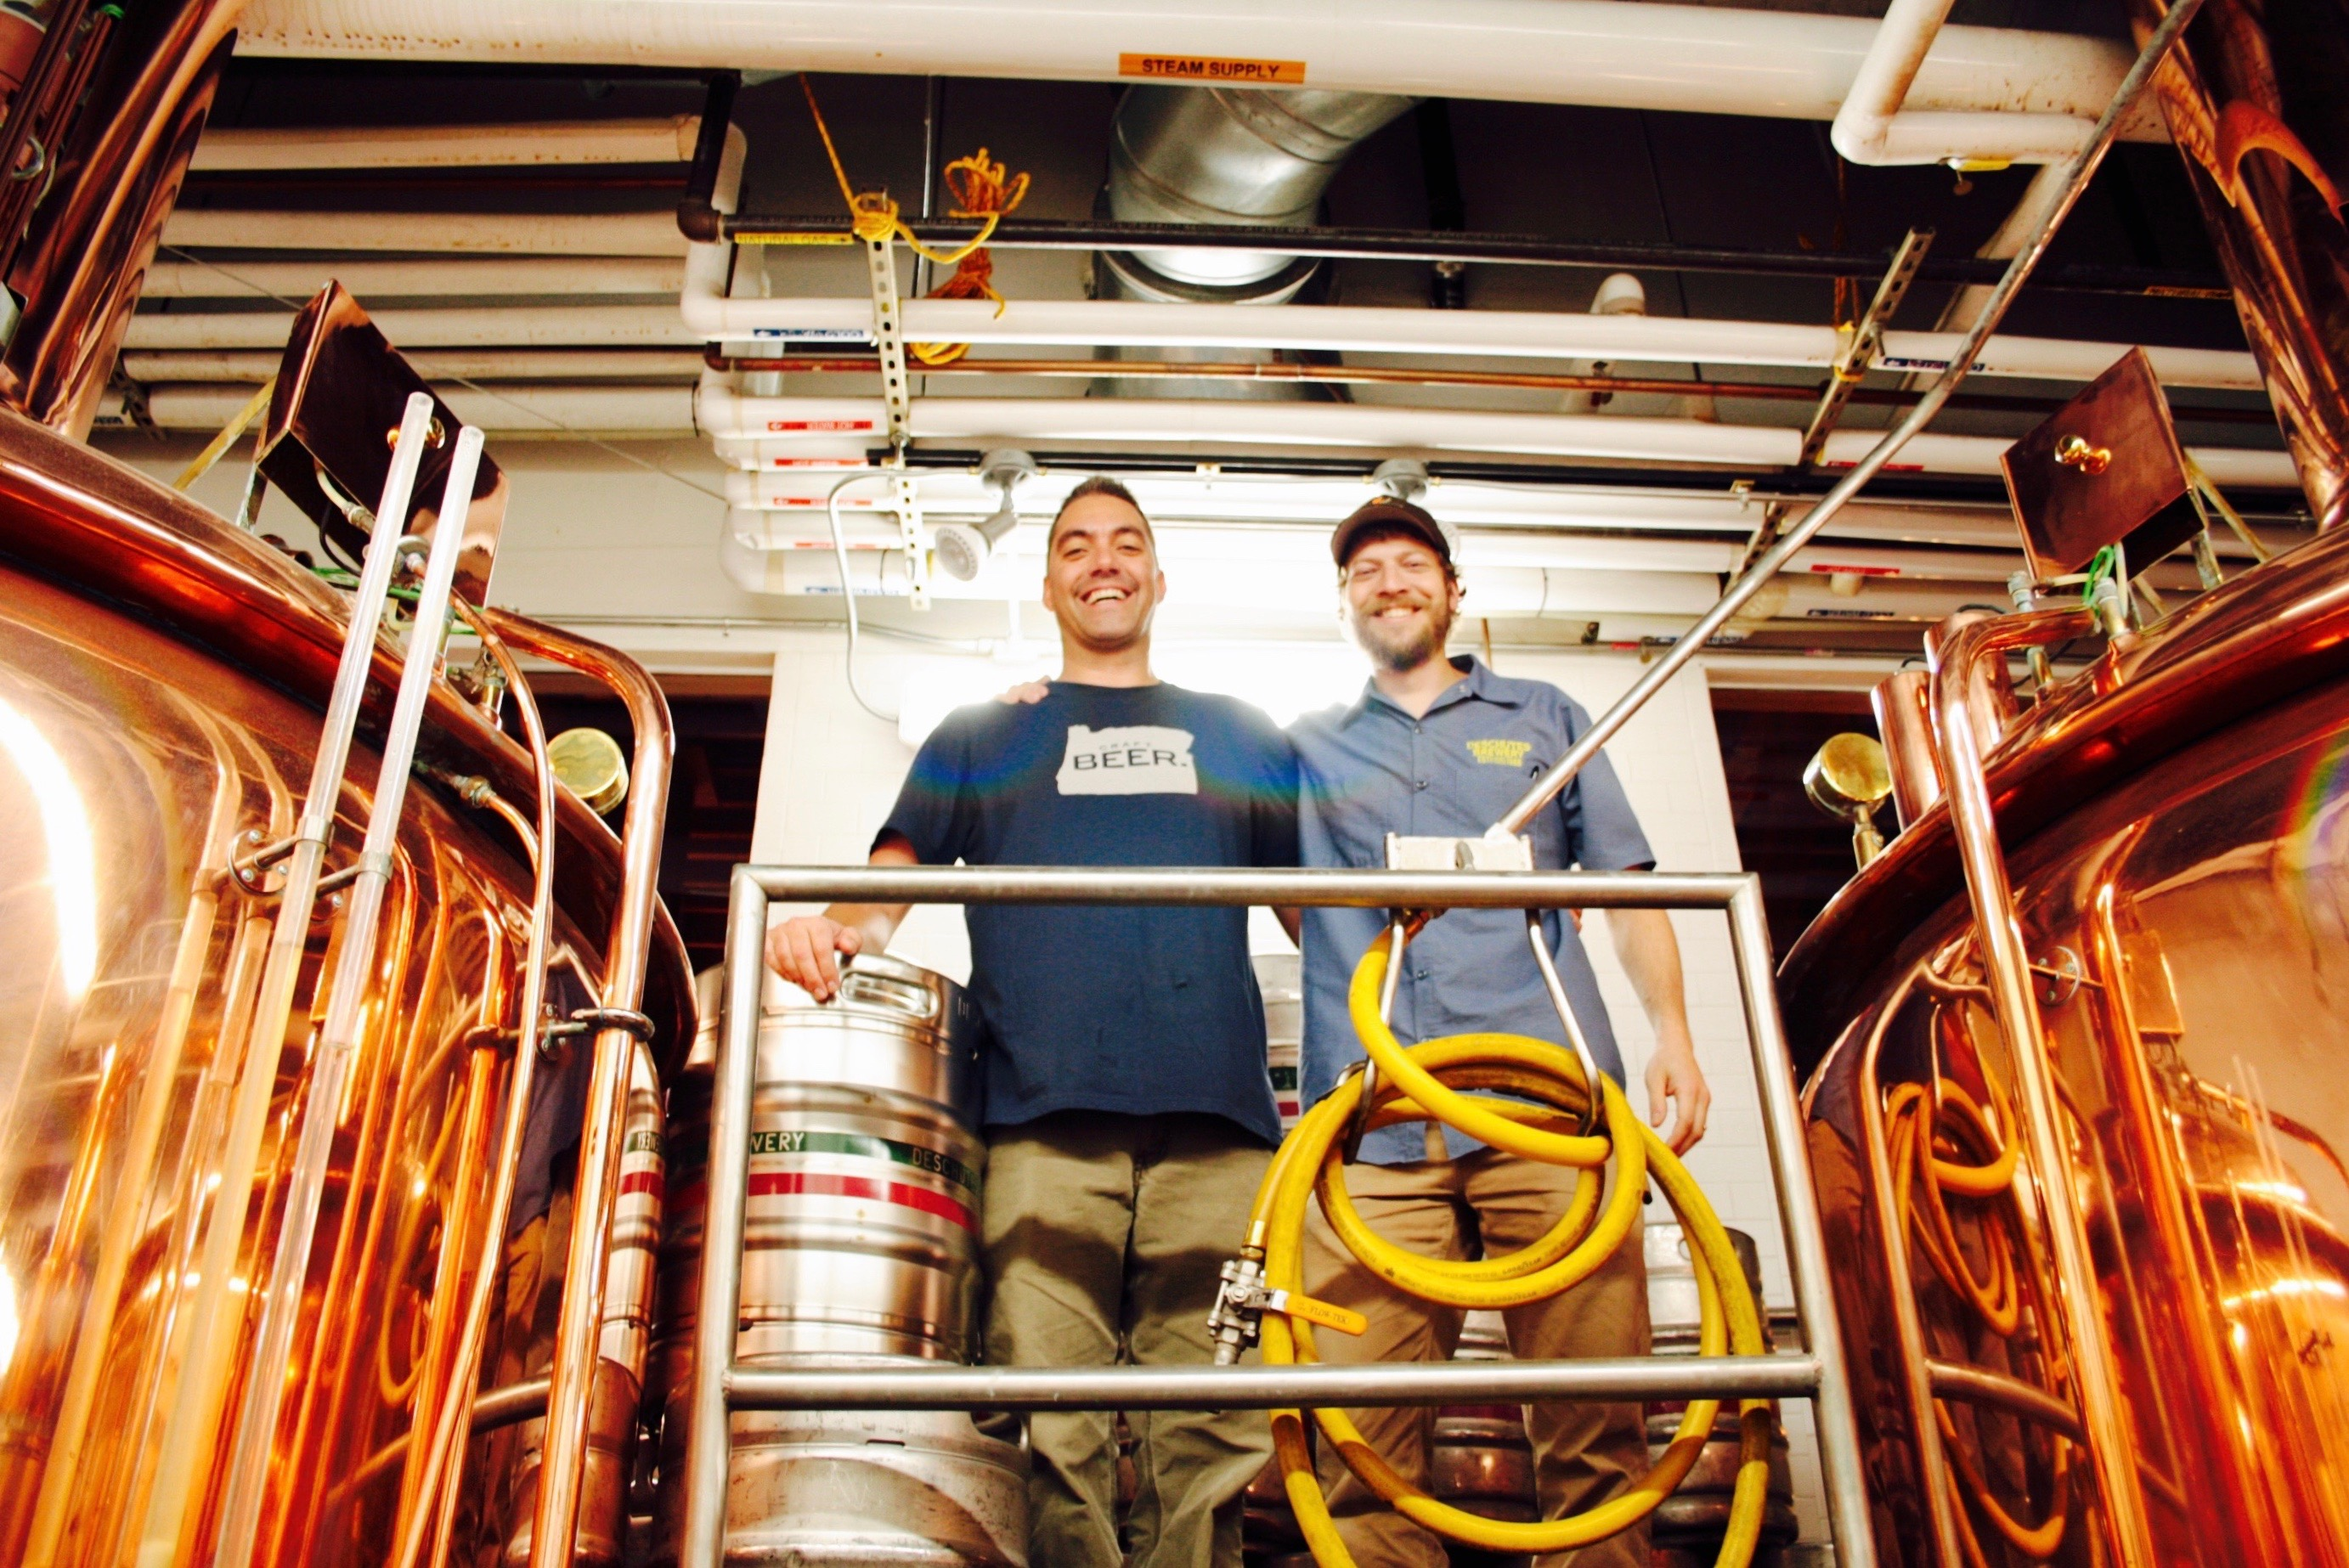 Ben Kehs and Jake Harper of Deschutes Brewery. (photo by Ryan Spencer)